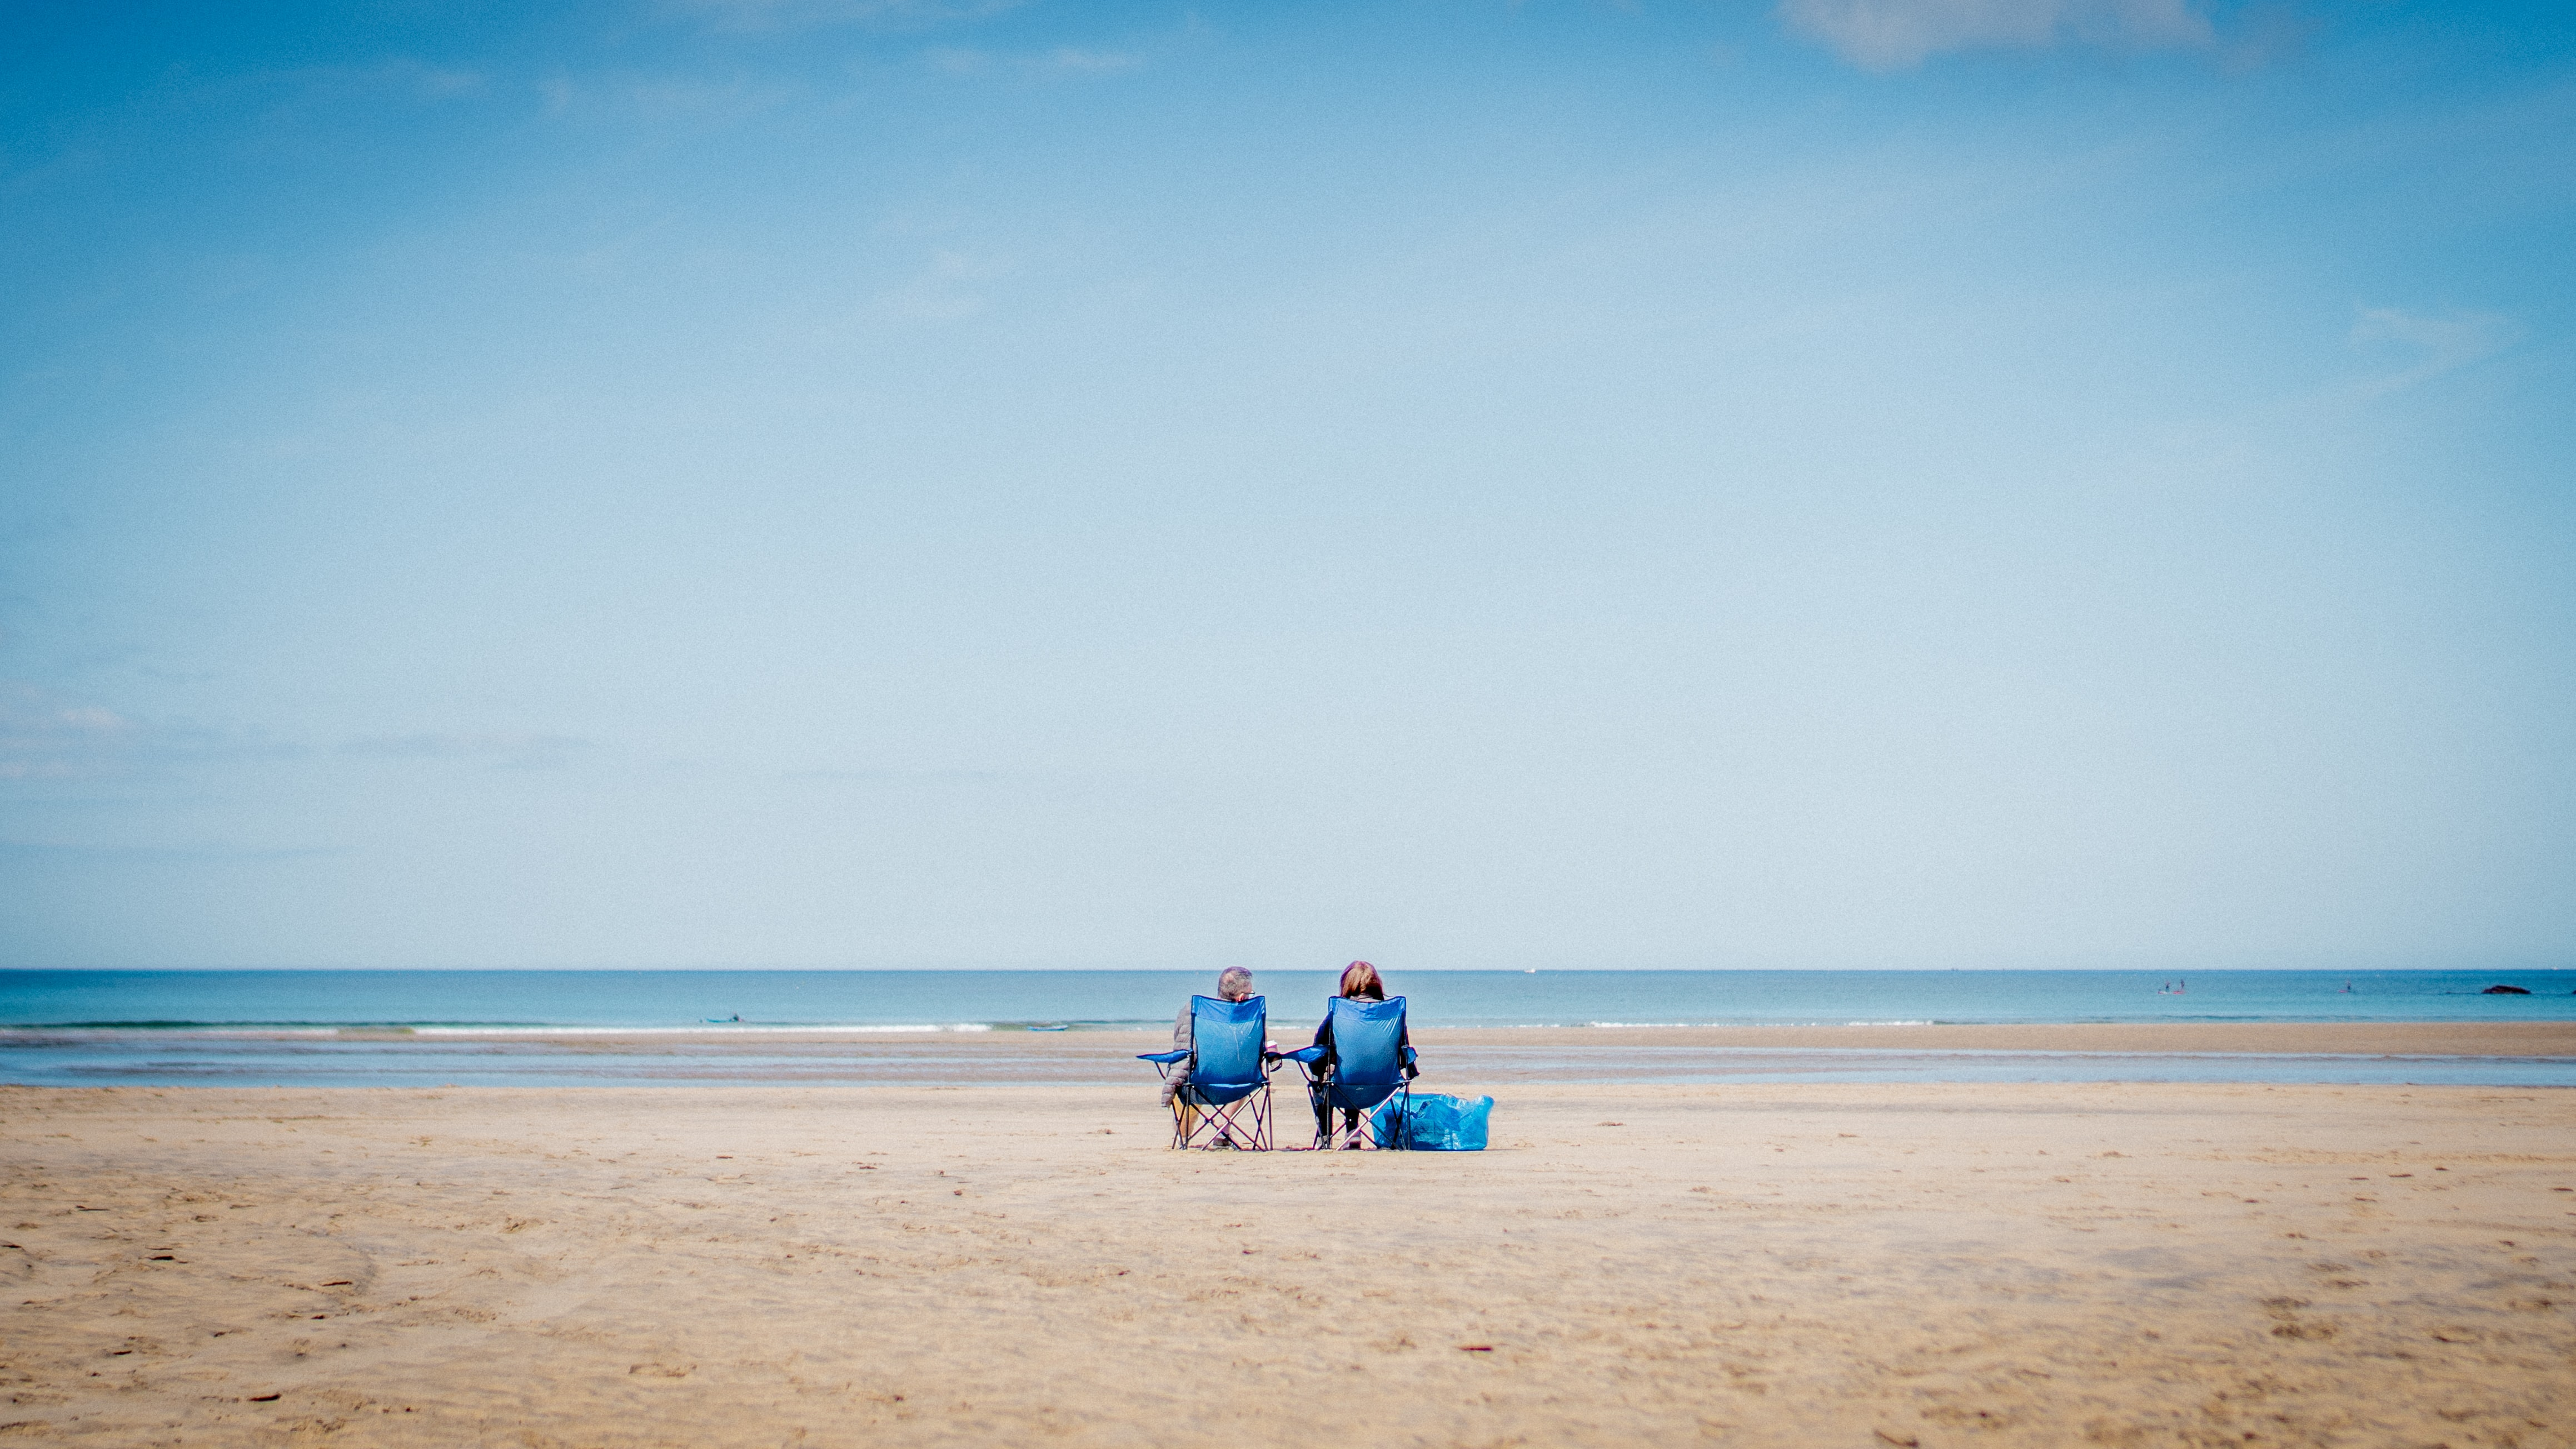 A couple sit on beach chairs on Gwithian Beach in Cornwall